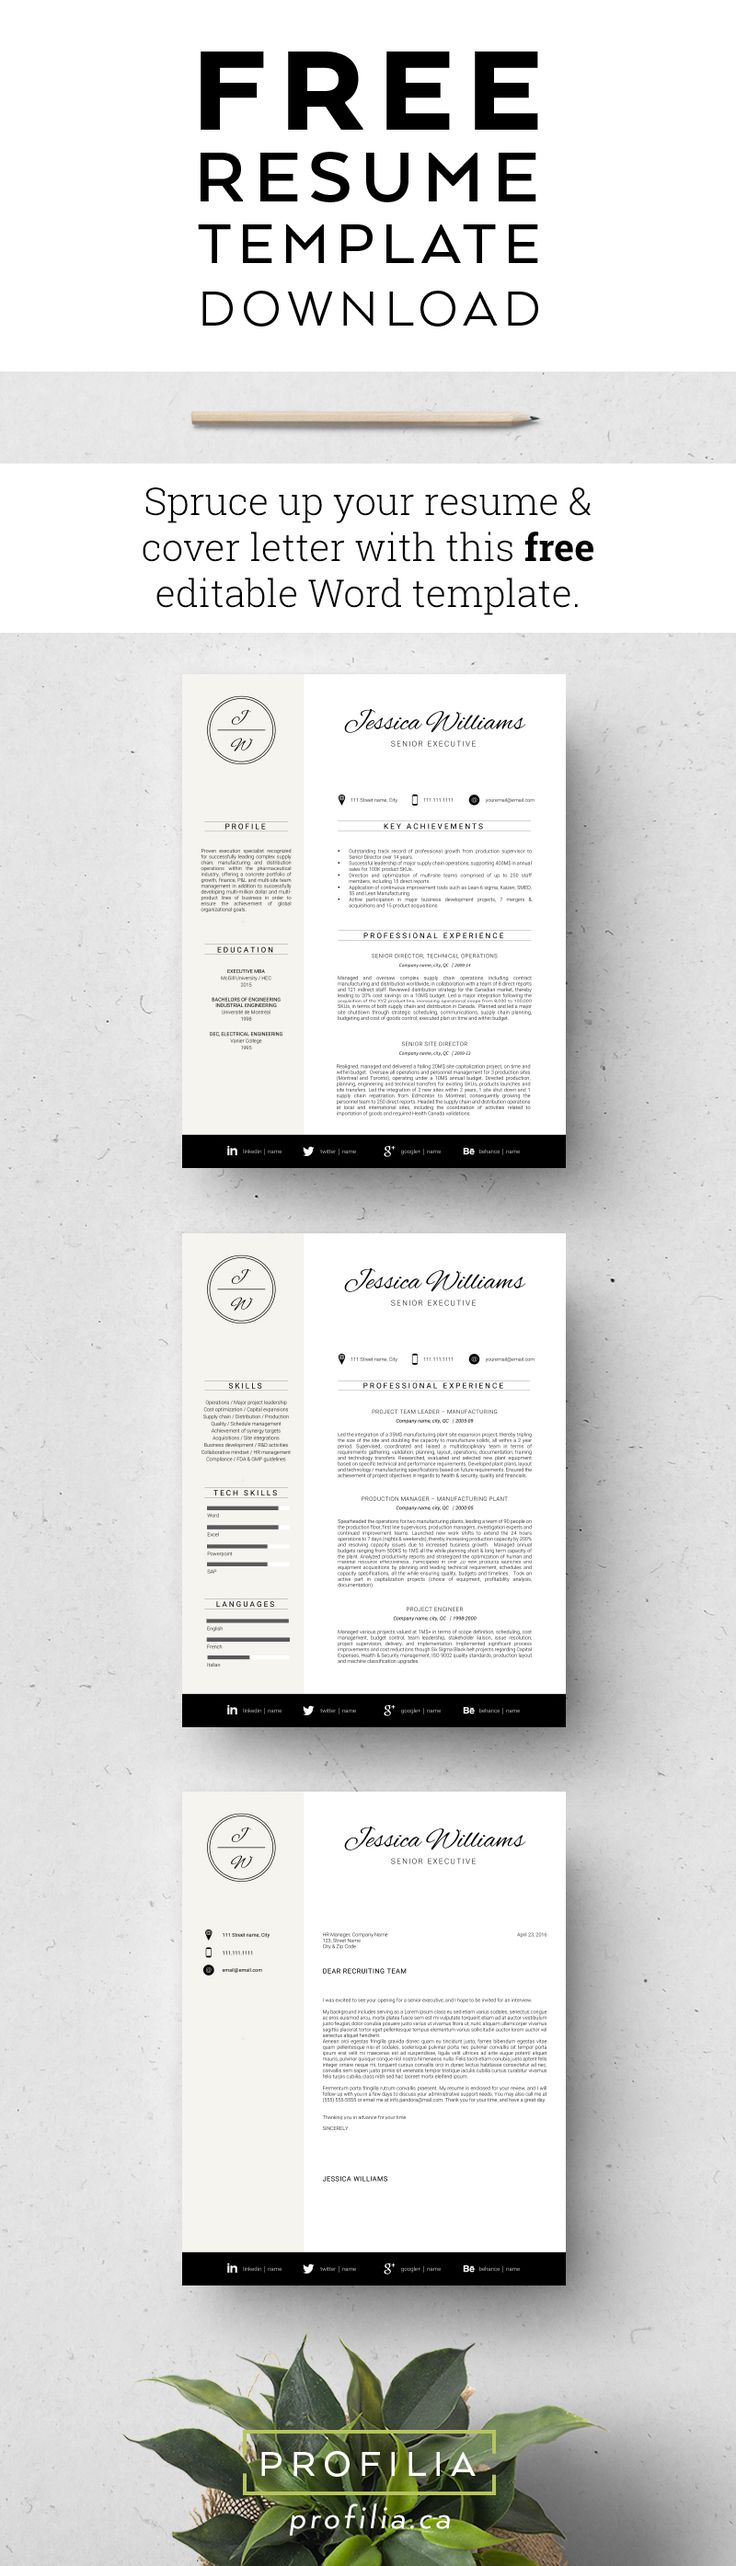 free resume template refresh your job search with this free resume cover - Cover Letter For Resume Sample Free Download